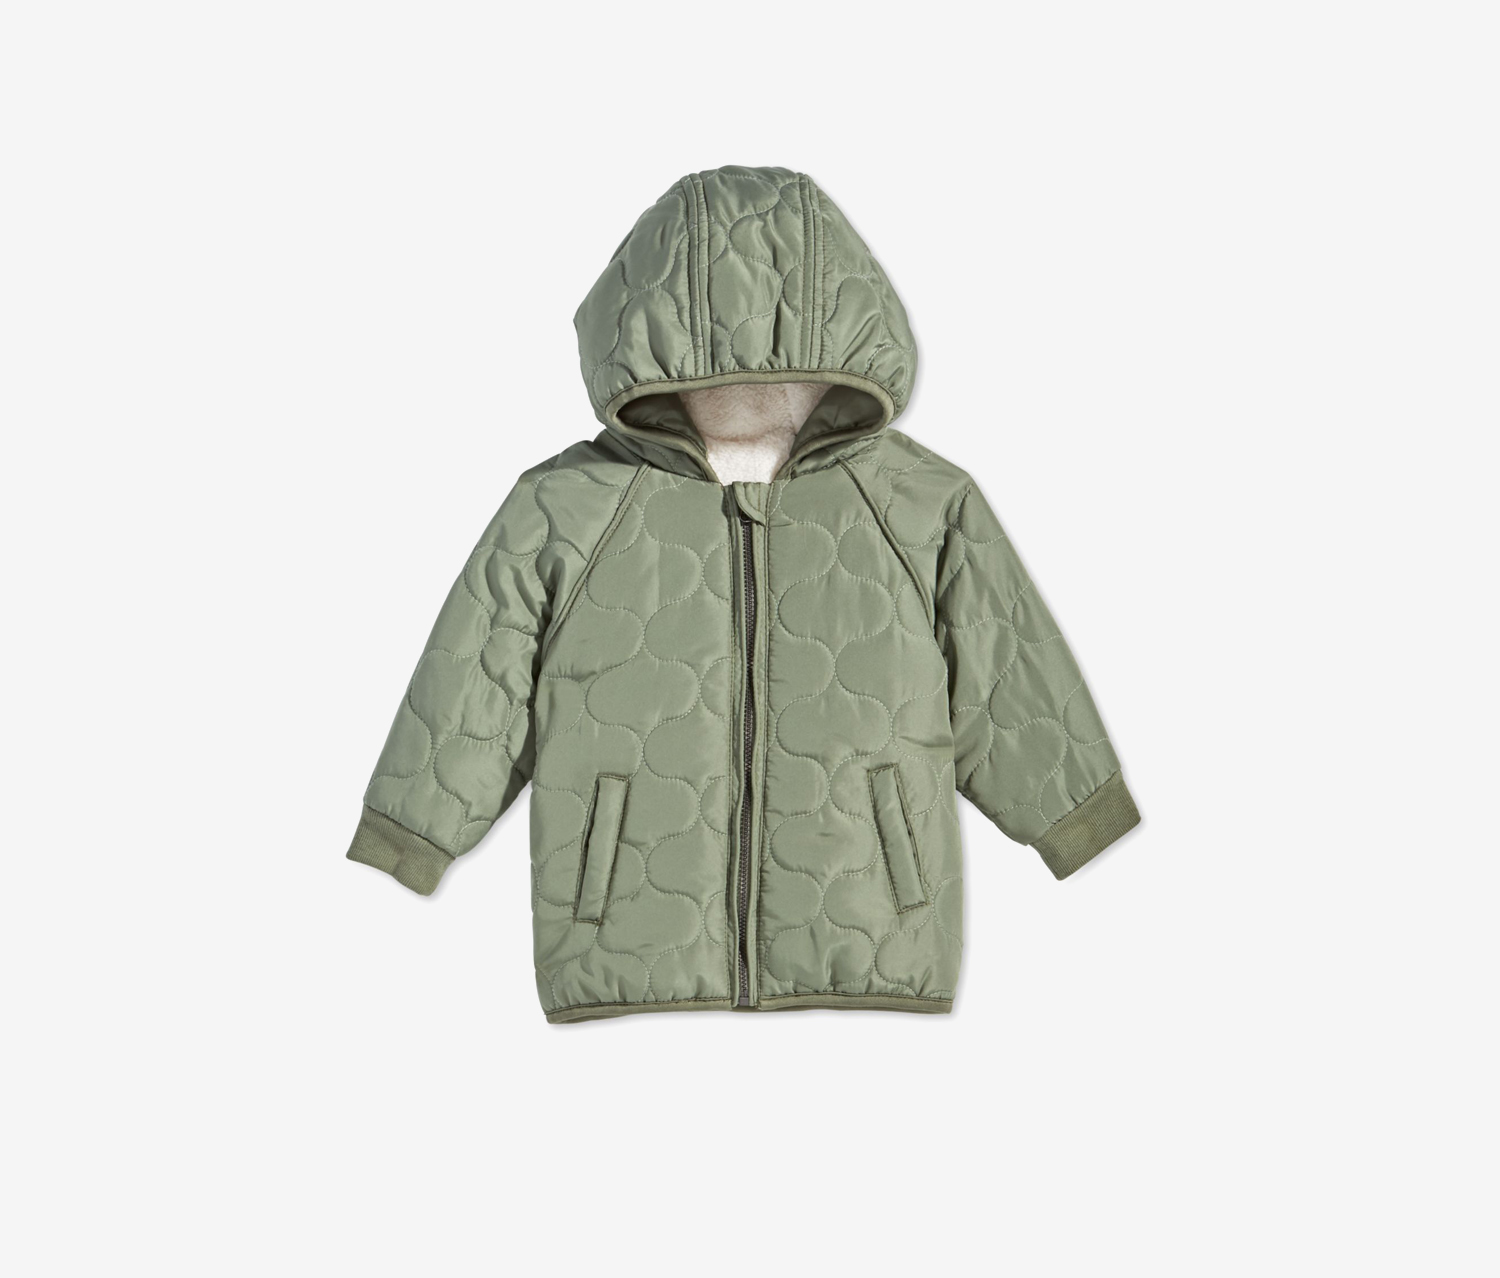 Toddler Boys Hooded Puffer Jacket, Pine Brush